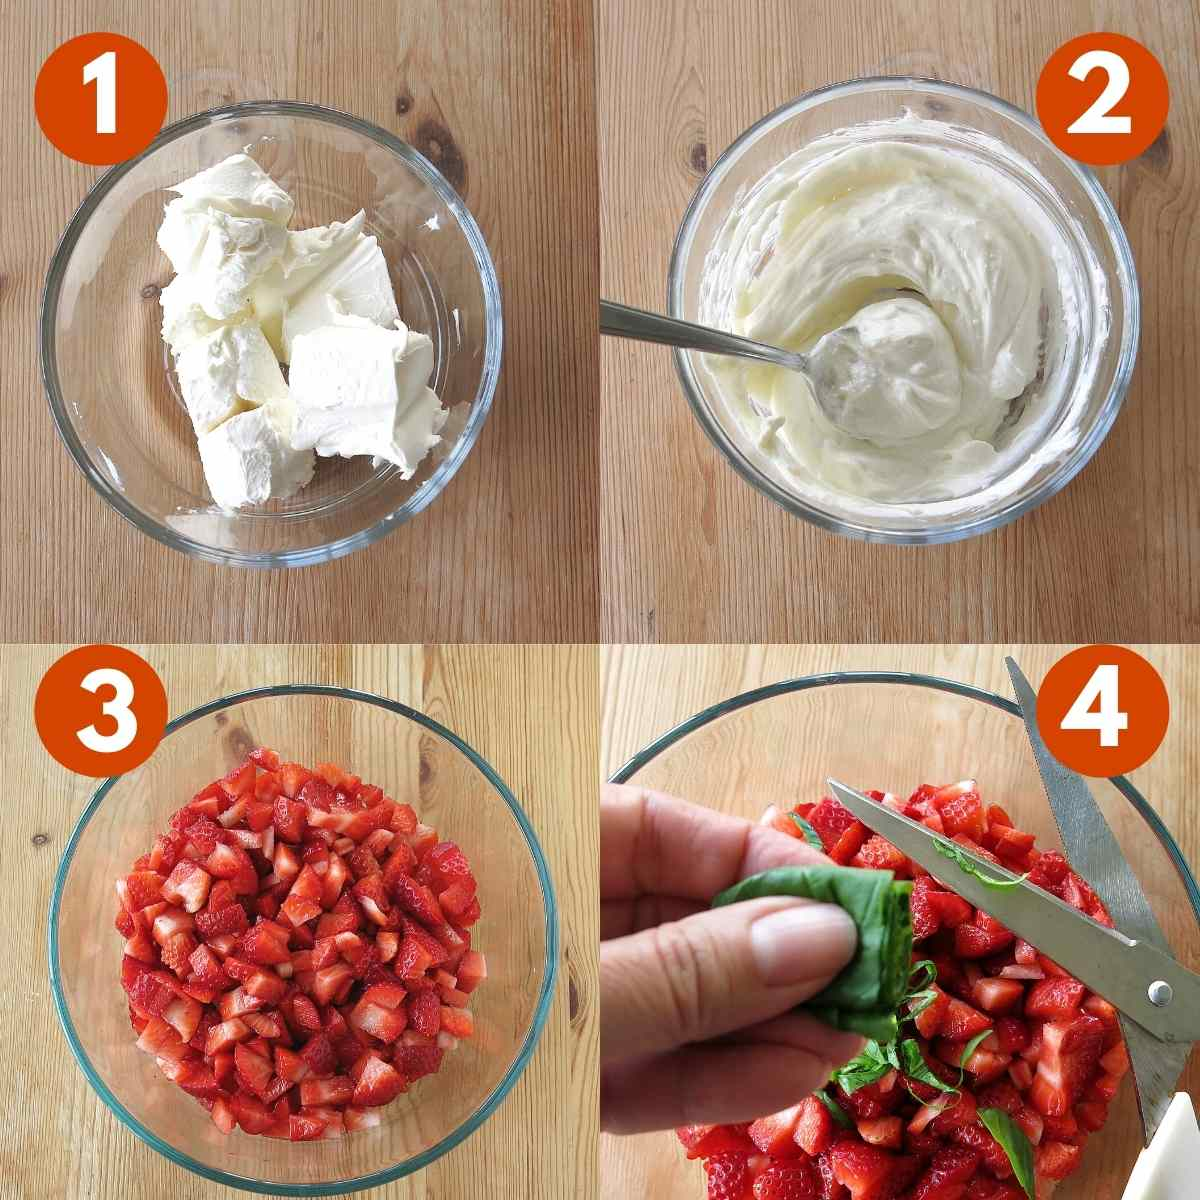 Numbered graphic of steps 1 through 4 to make recipe.